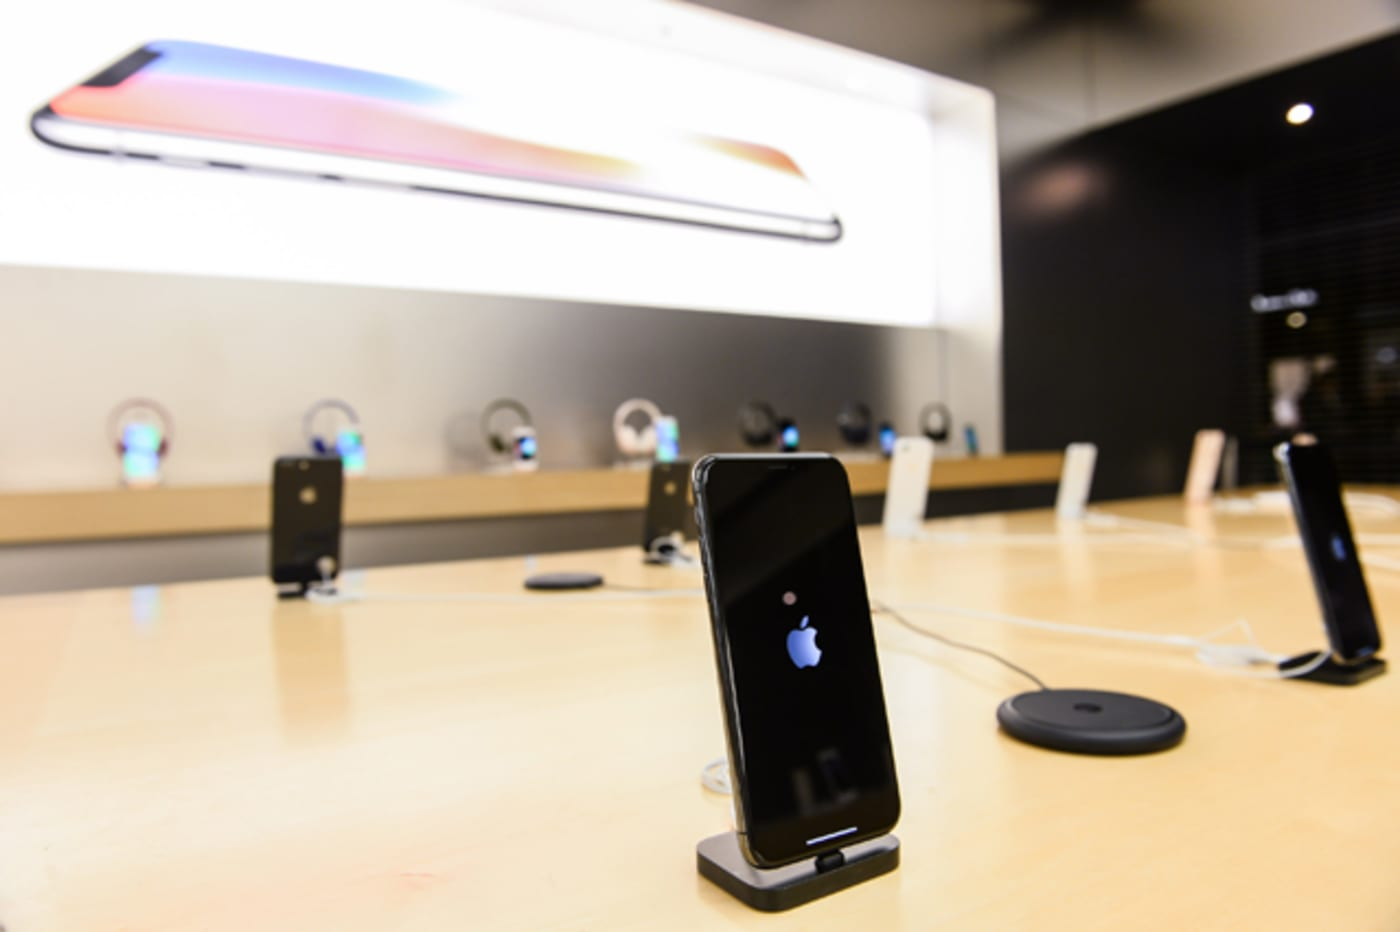 The new iPhone X at Apple Store Eaton Centre